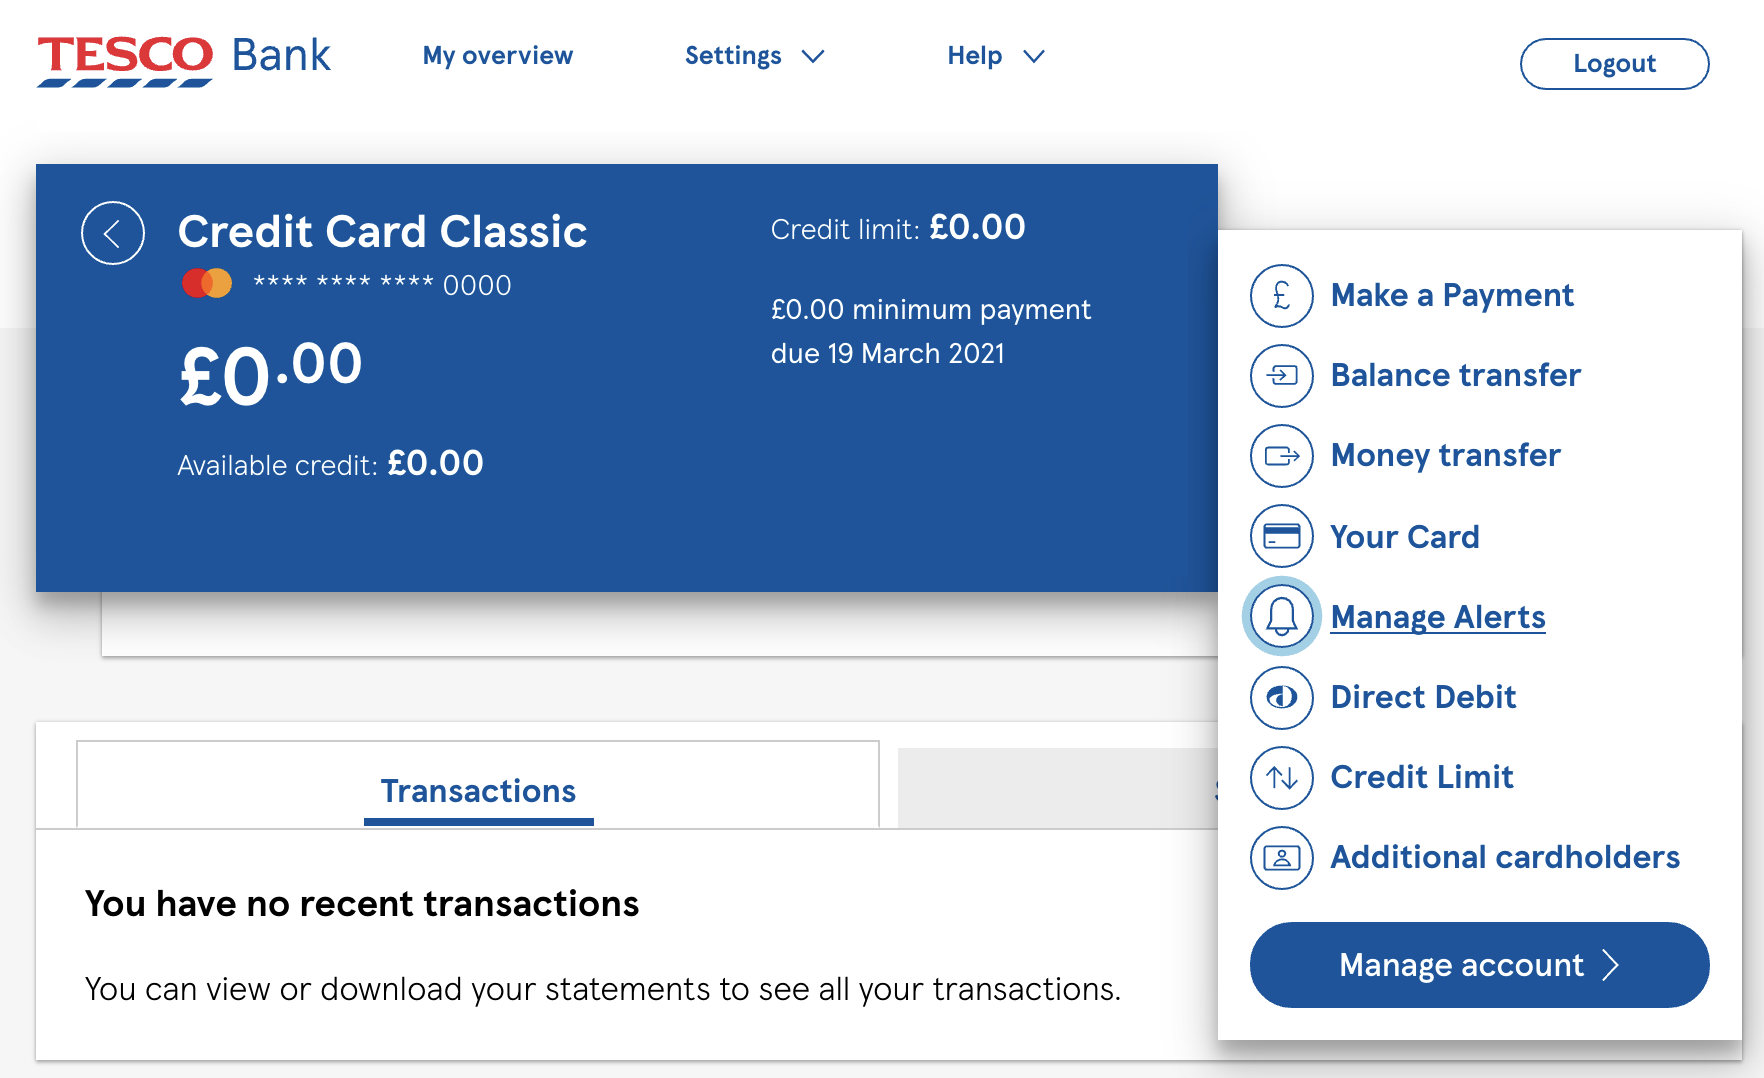 Managing your credit cards alerts